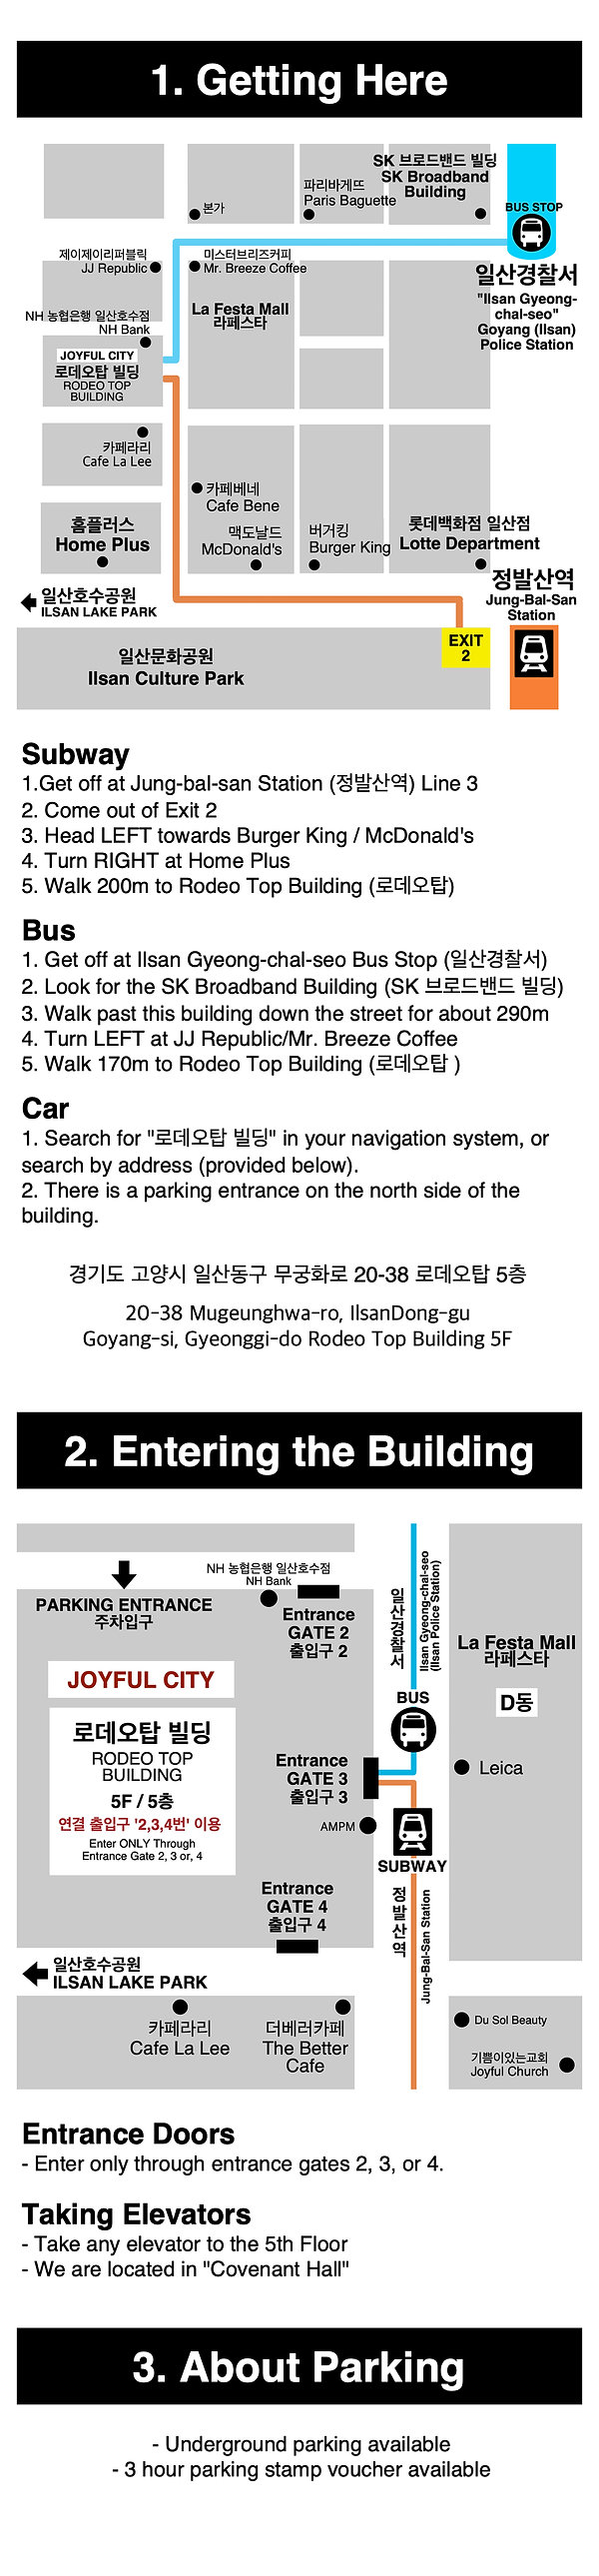 Full Size Map Directions 02-1.jpg